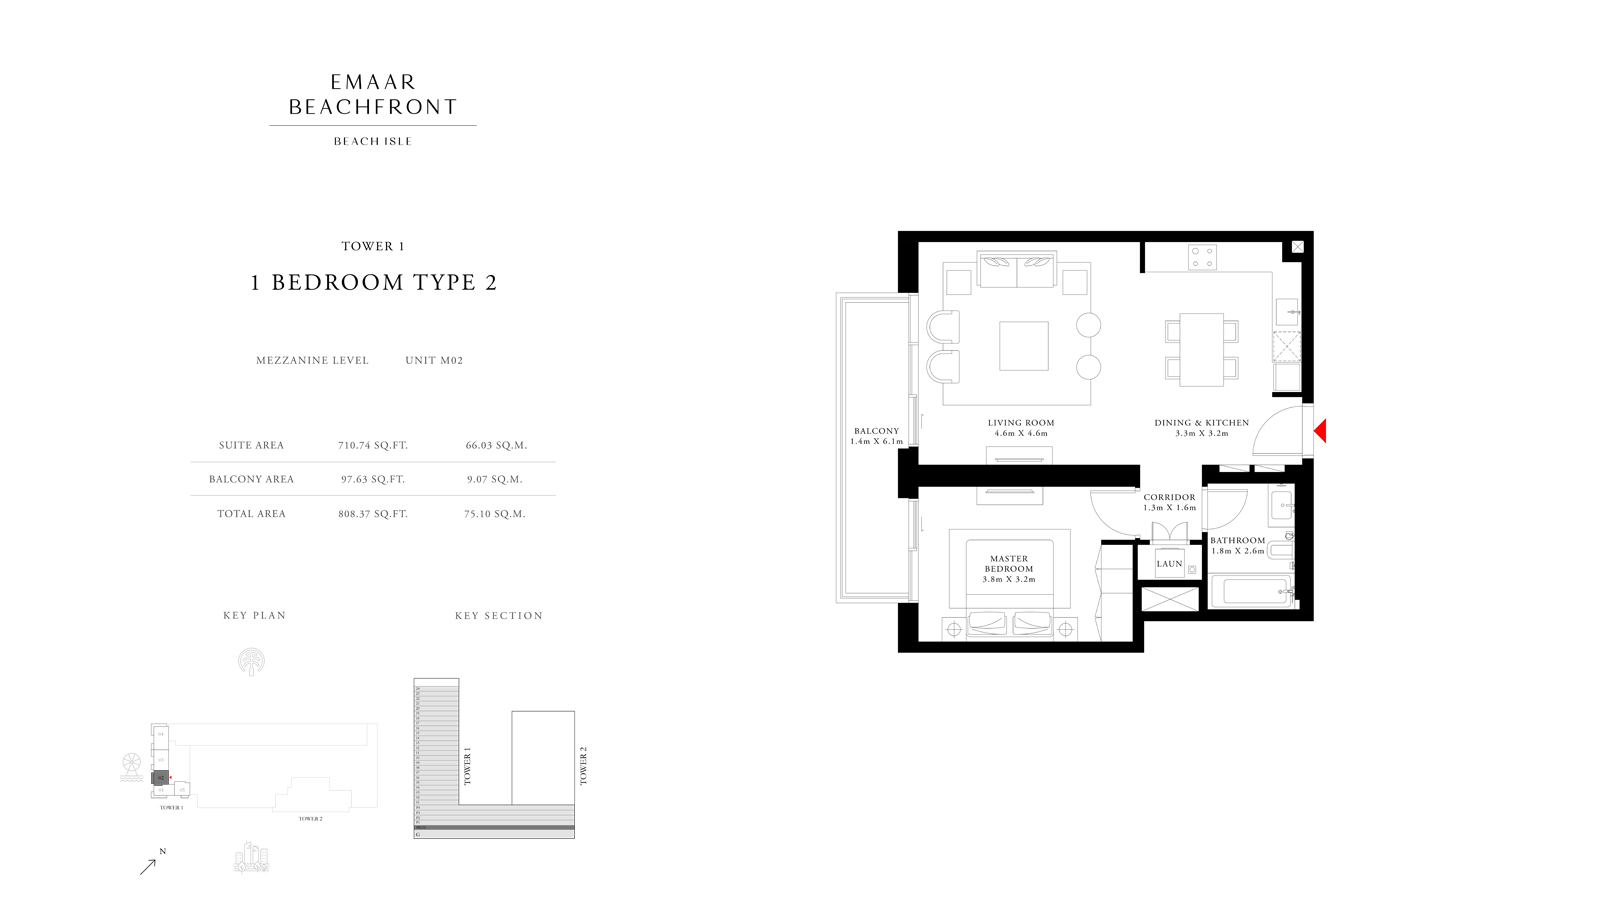 1 Bedroom Type 2 Tower 1, Size 808    sq. ft.